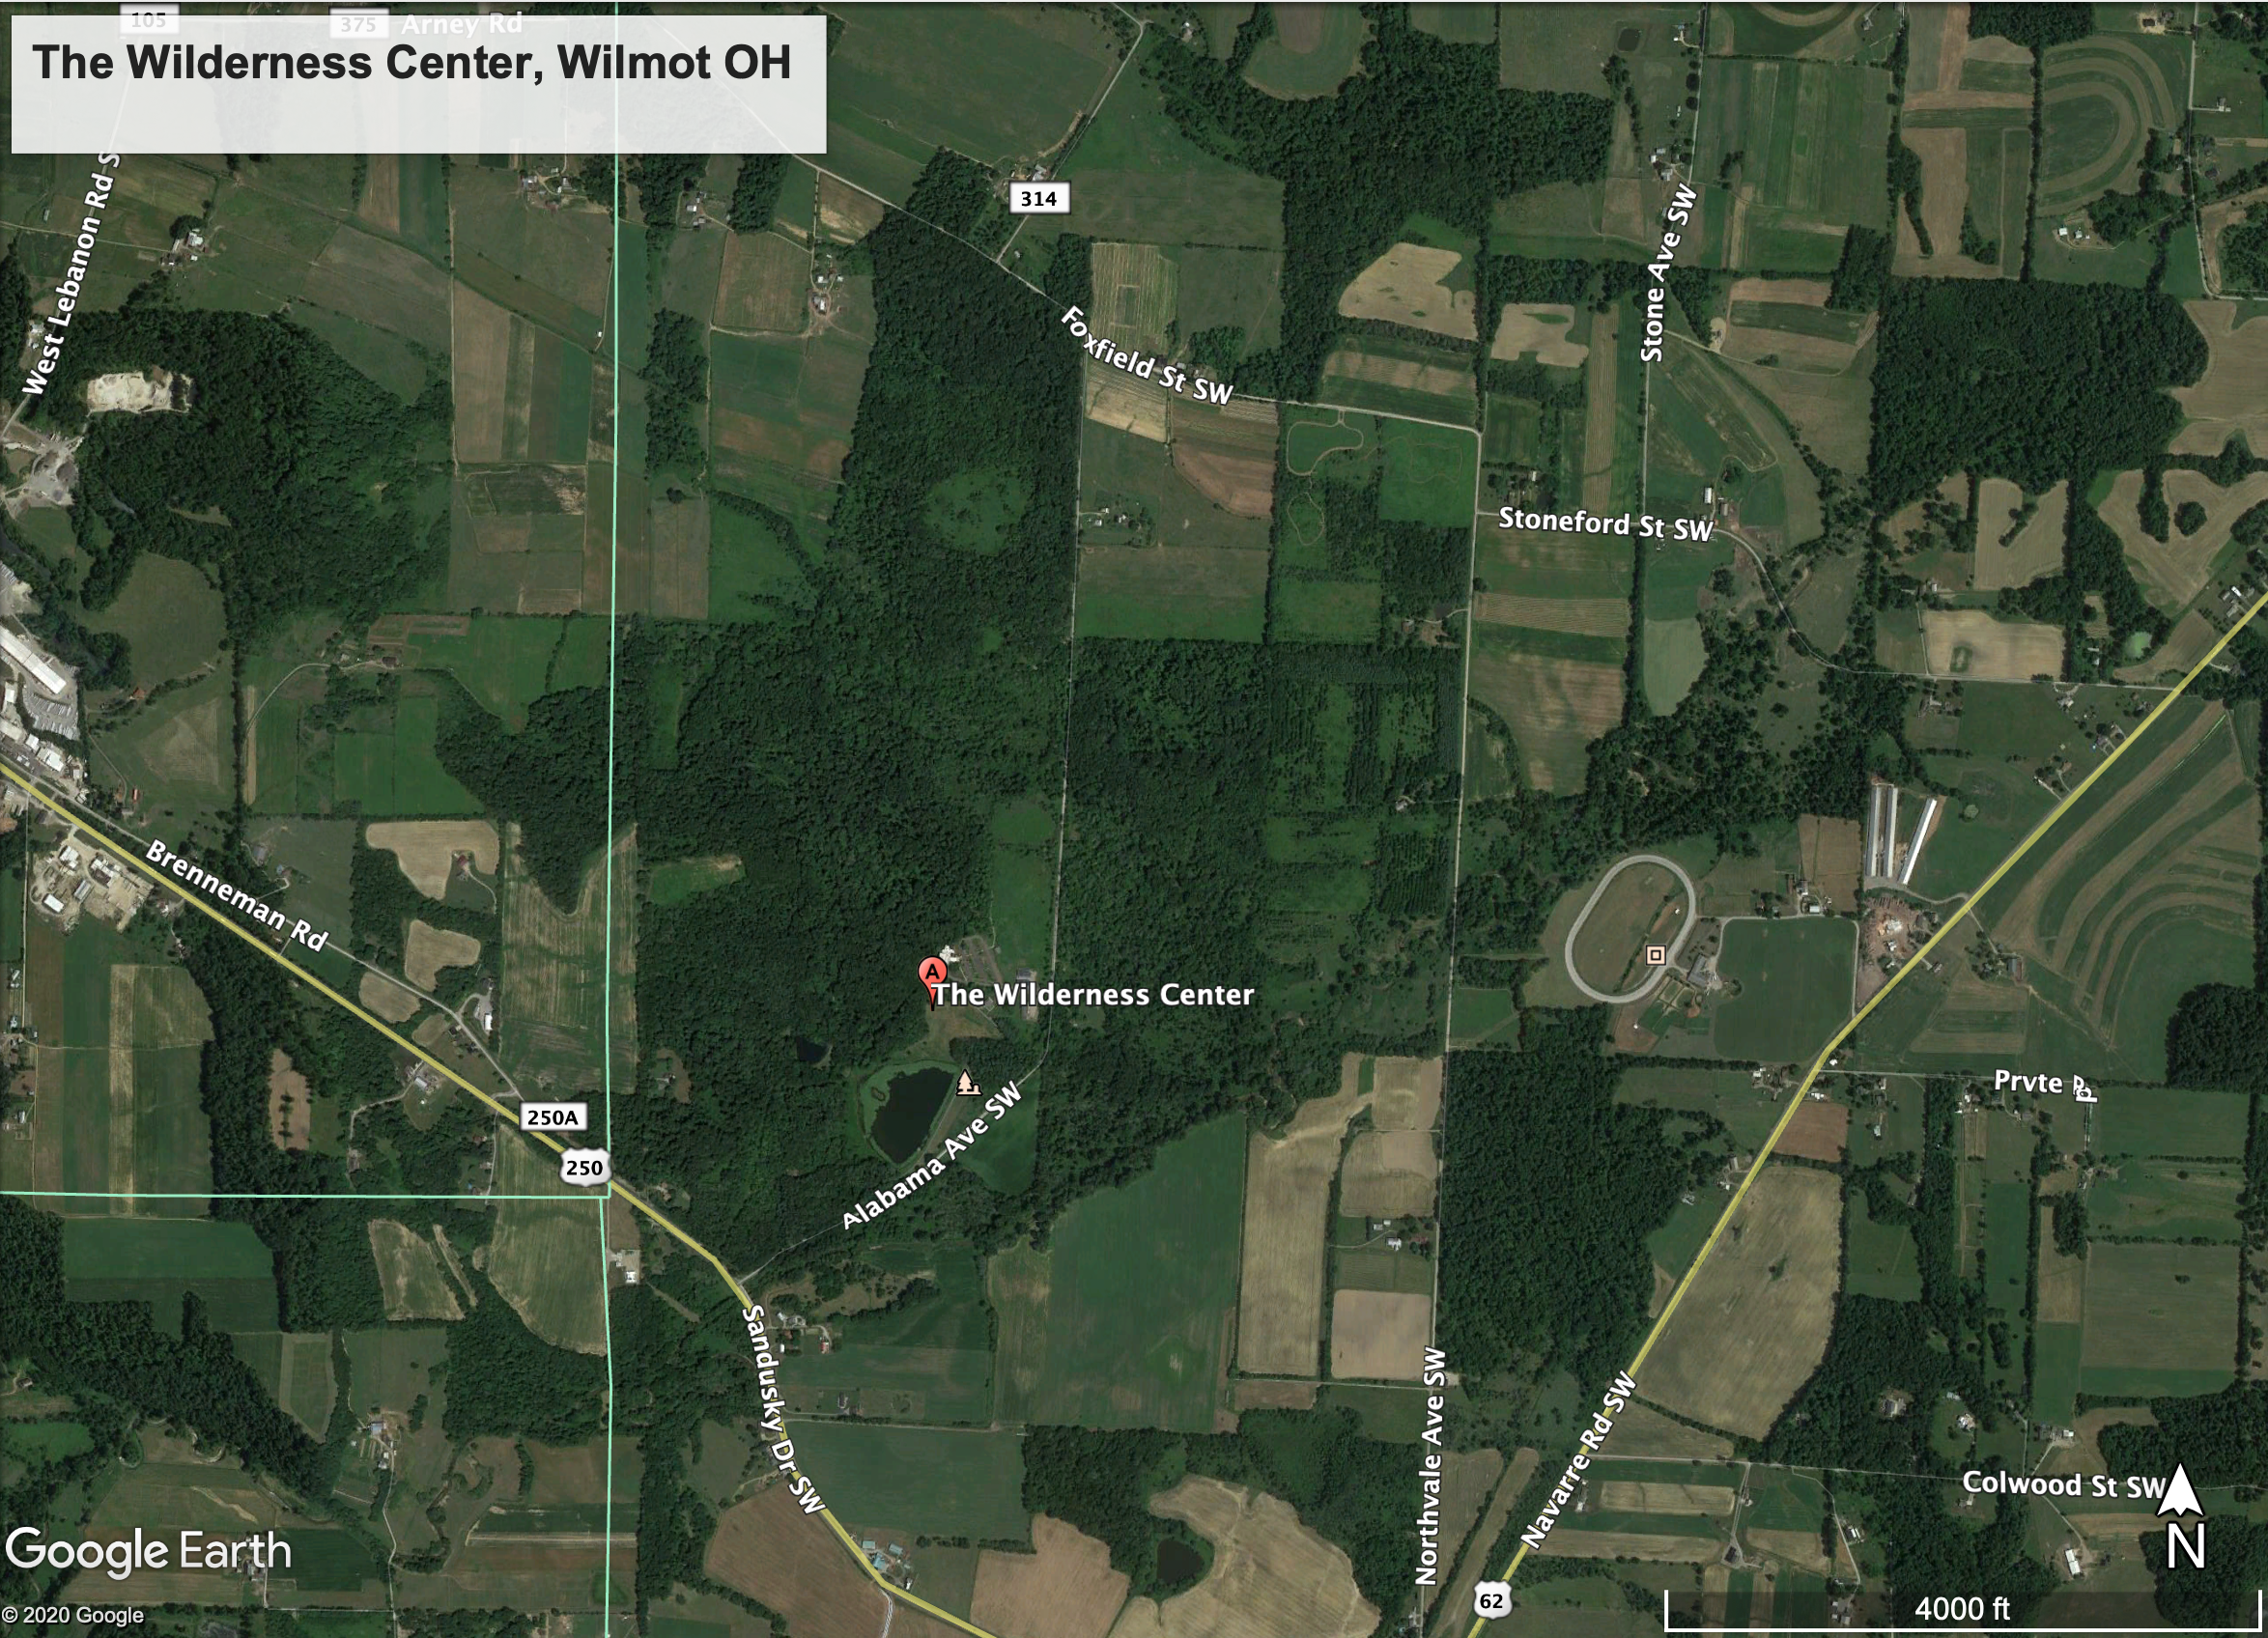 Aerial view of The Wilderness Center in Wilmot Ohio